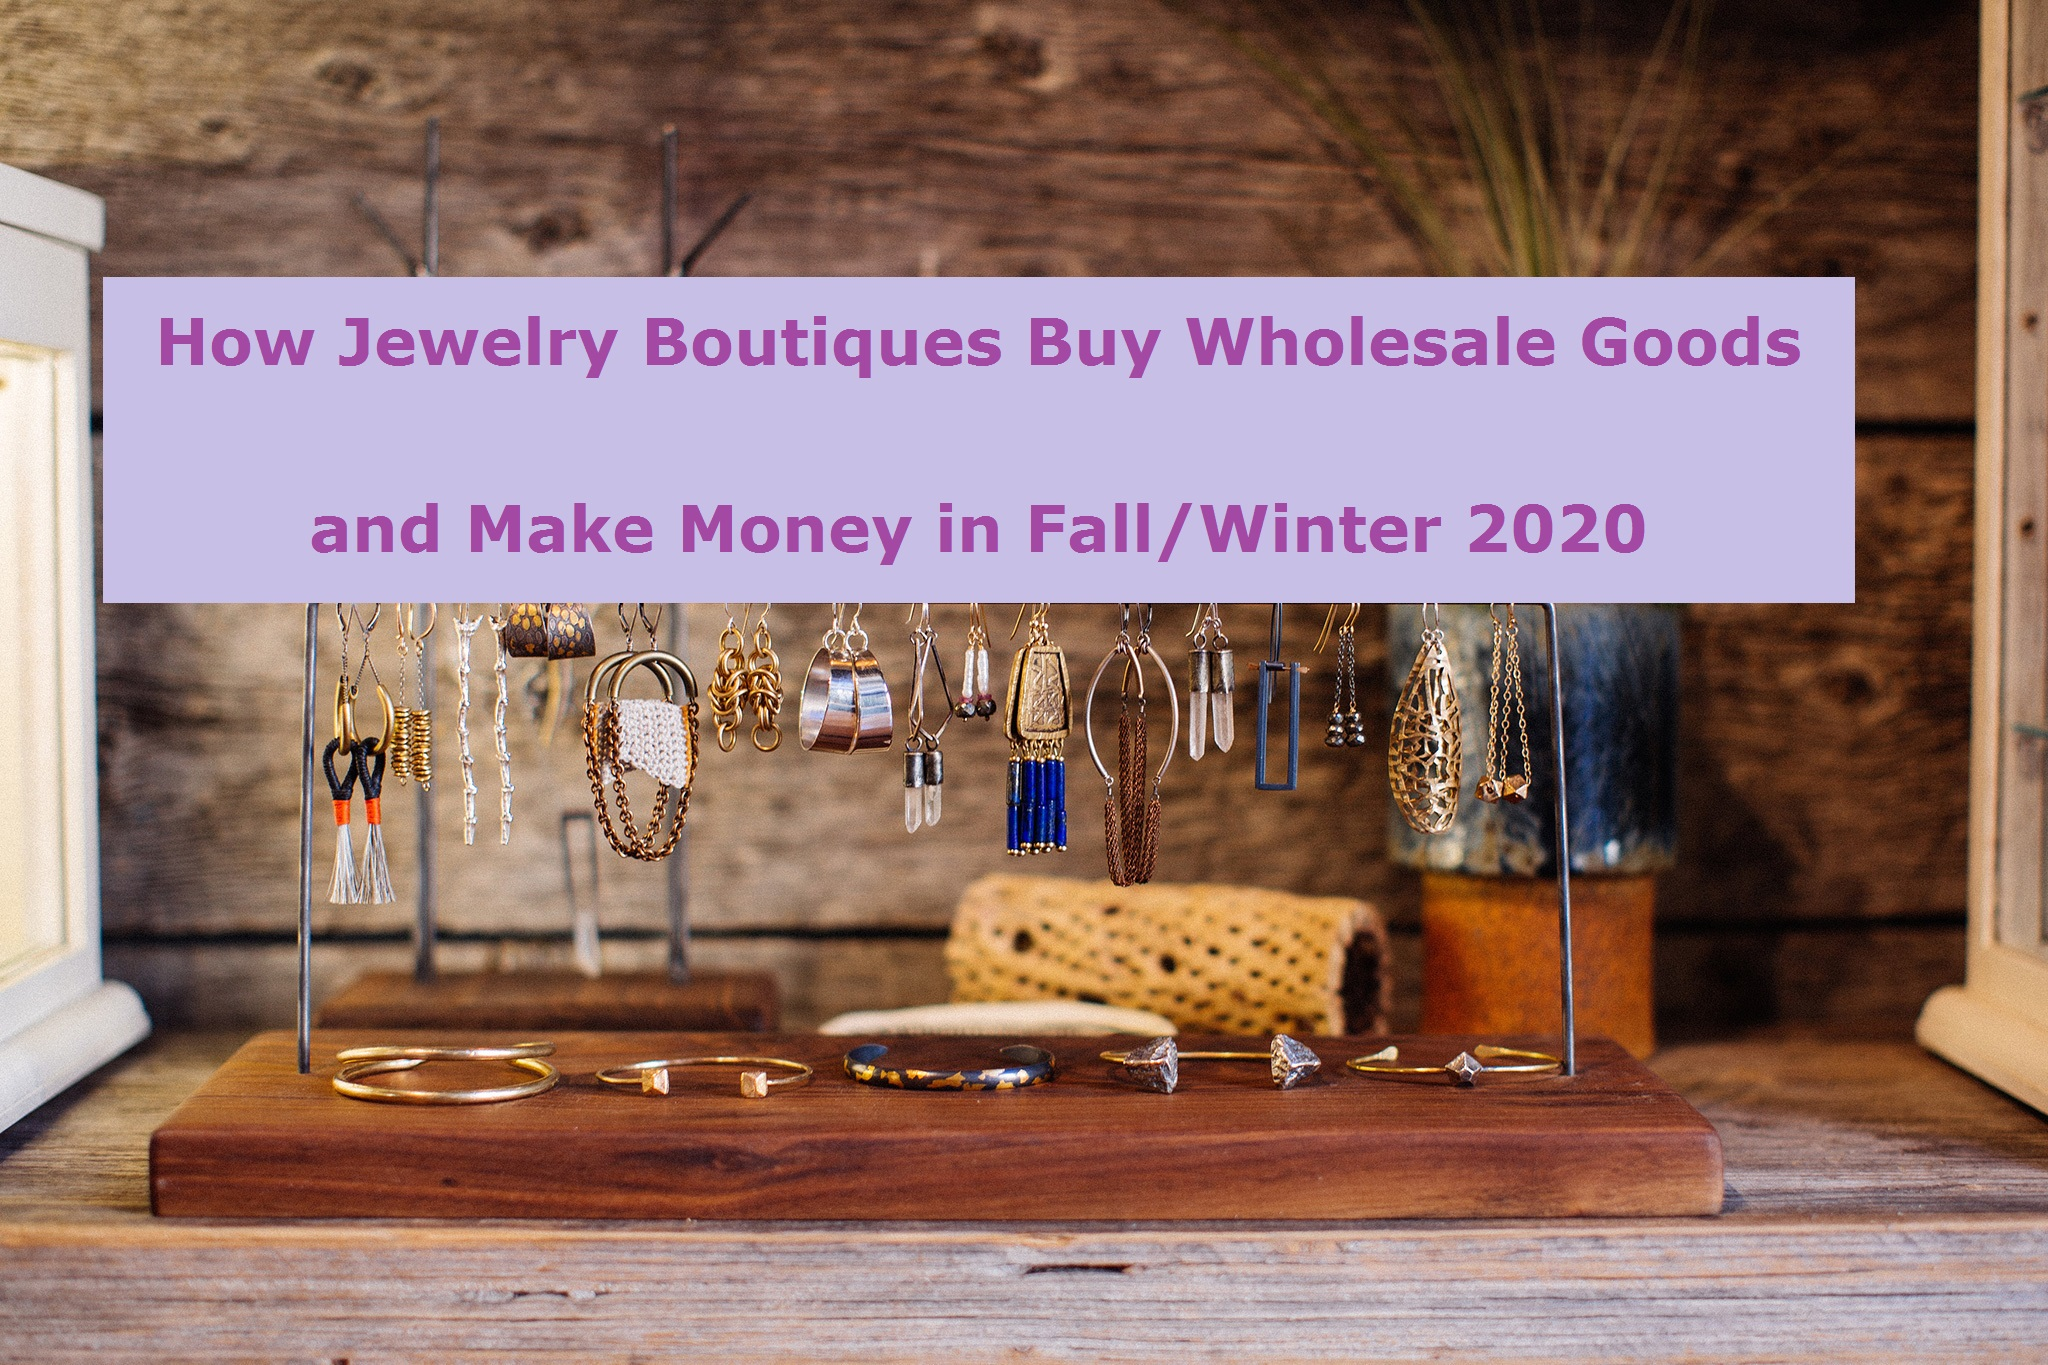 How Jewelry Boutiques Buy Wholesale Goods and Make Money in Fall/Winter 2020